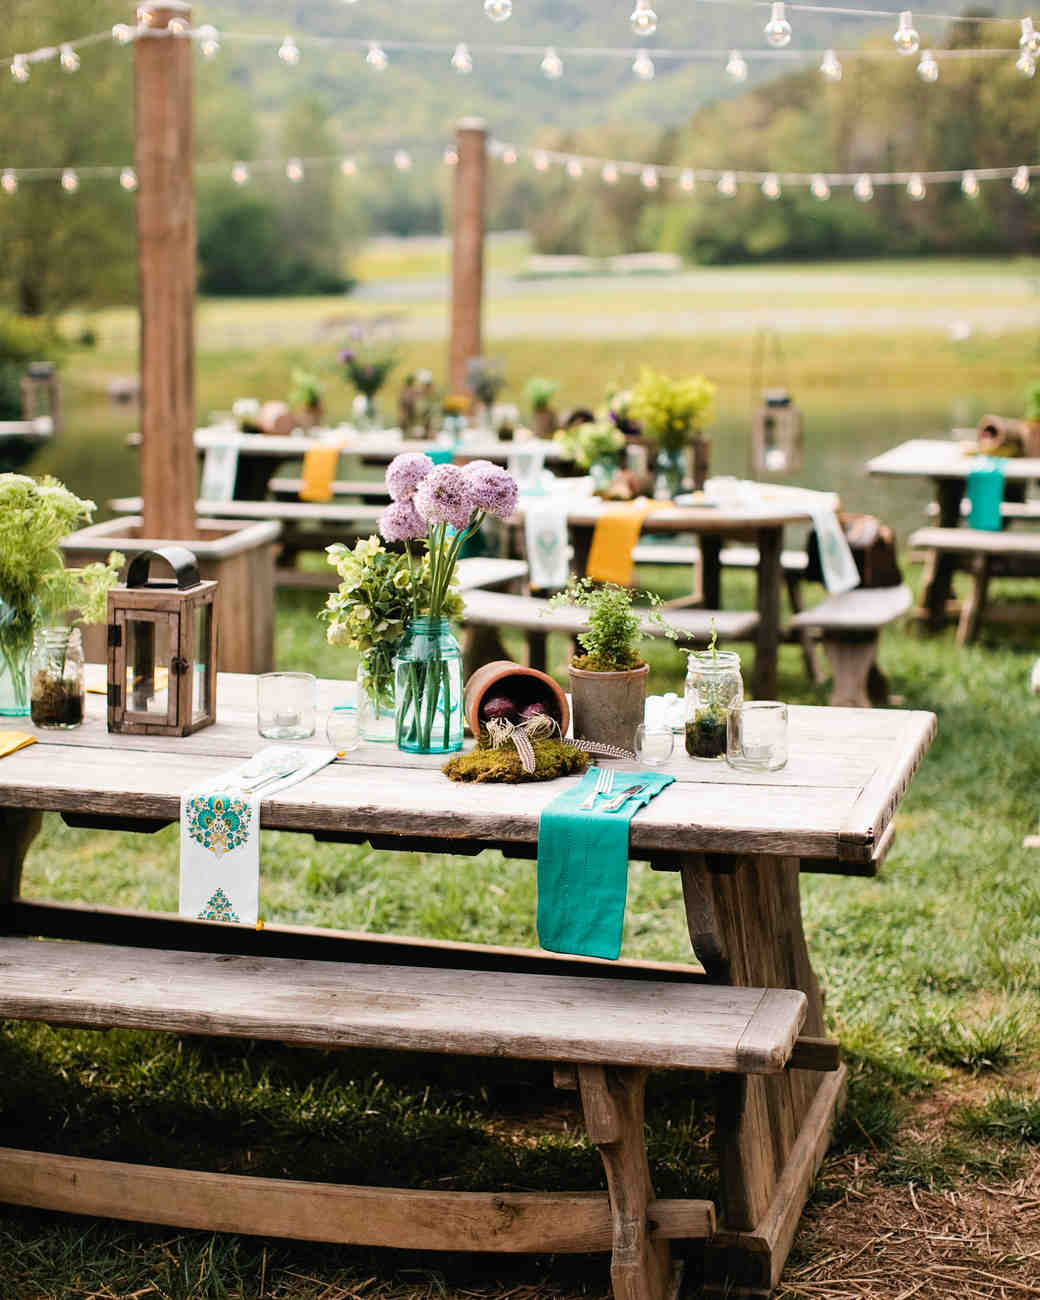 Outdoor Wedding Set Up Ideas: The Etiquette Of Wedding Rehearsal Dinners